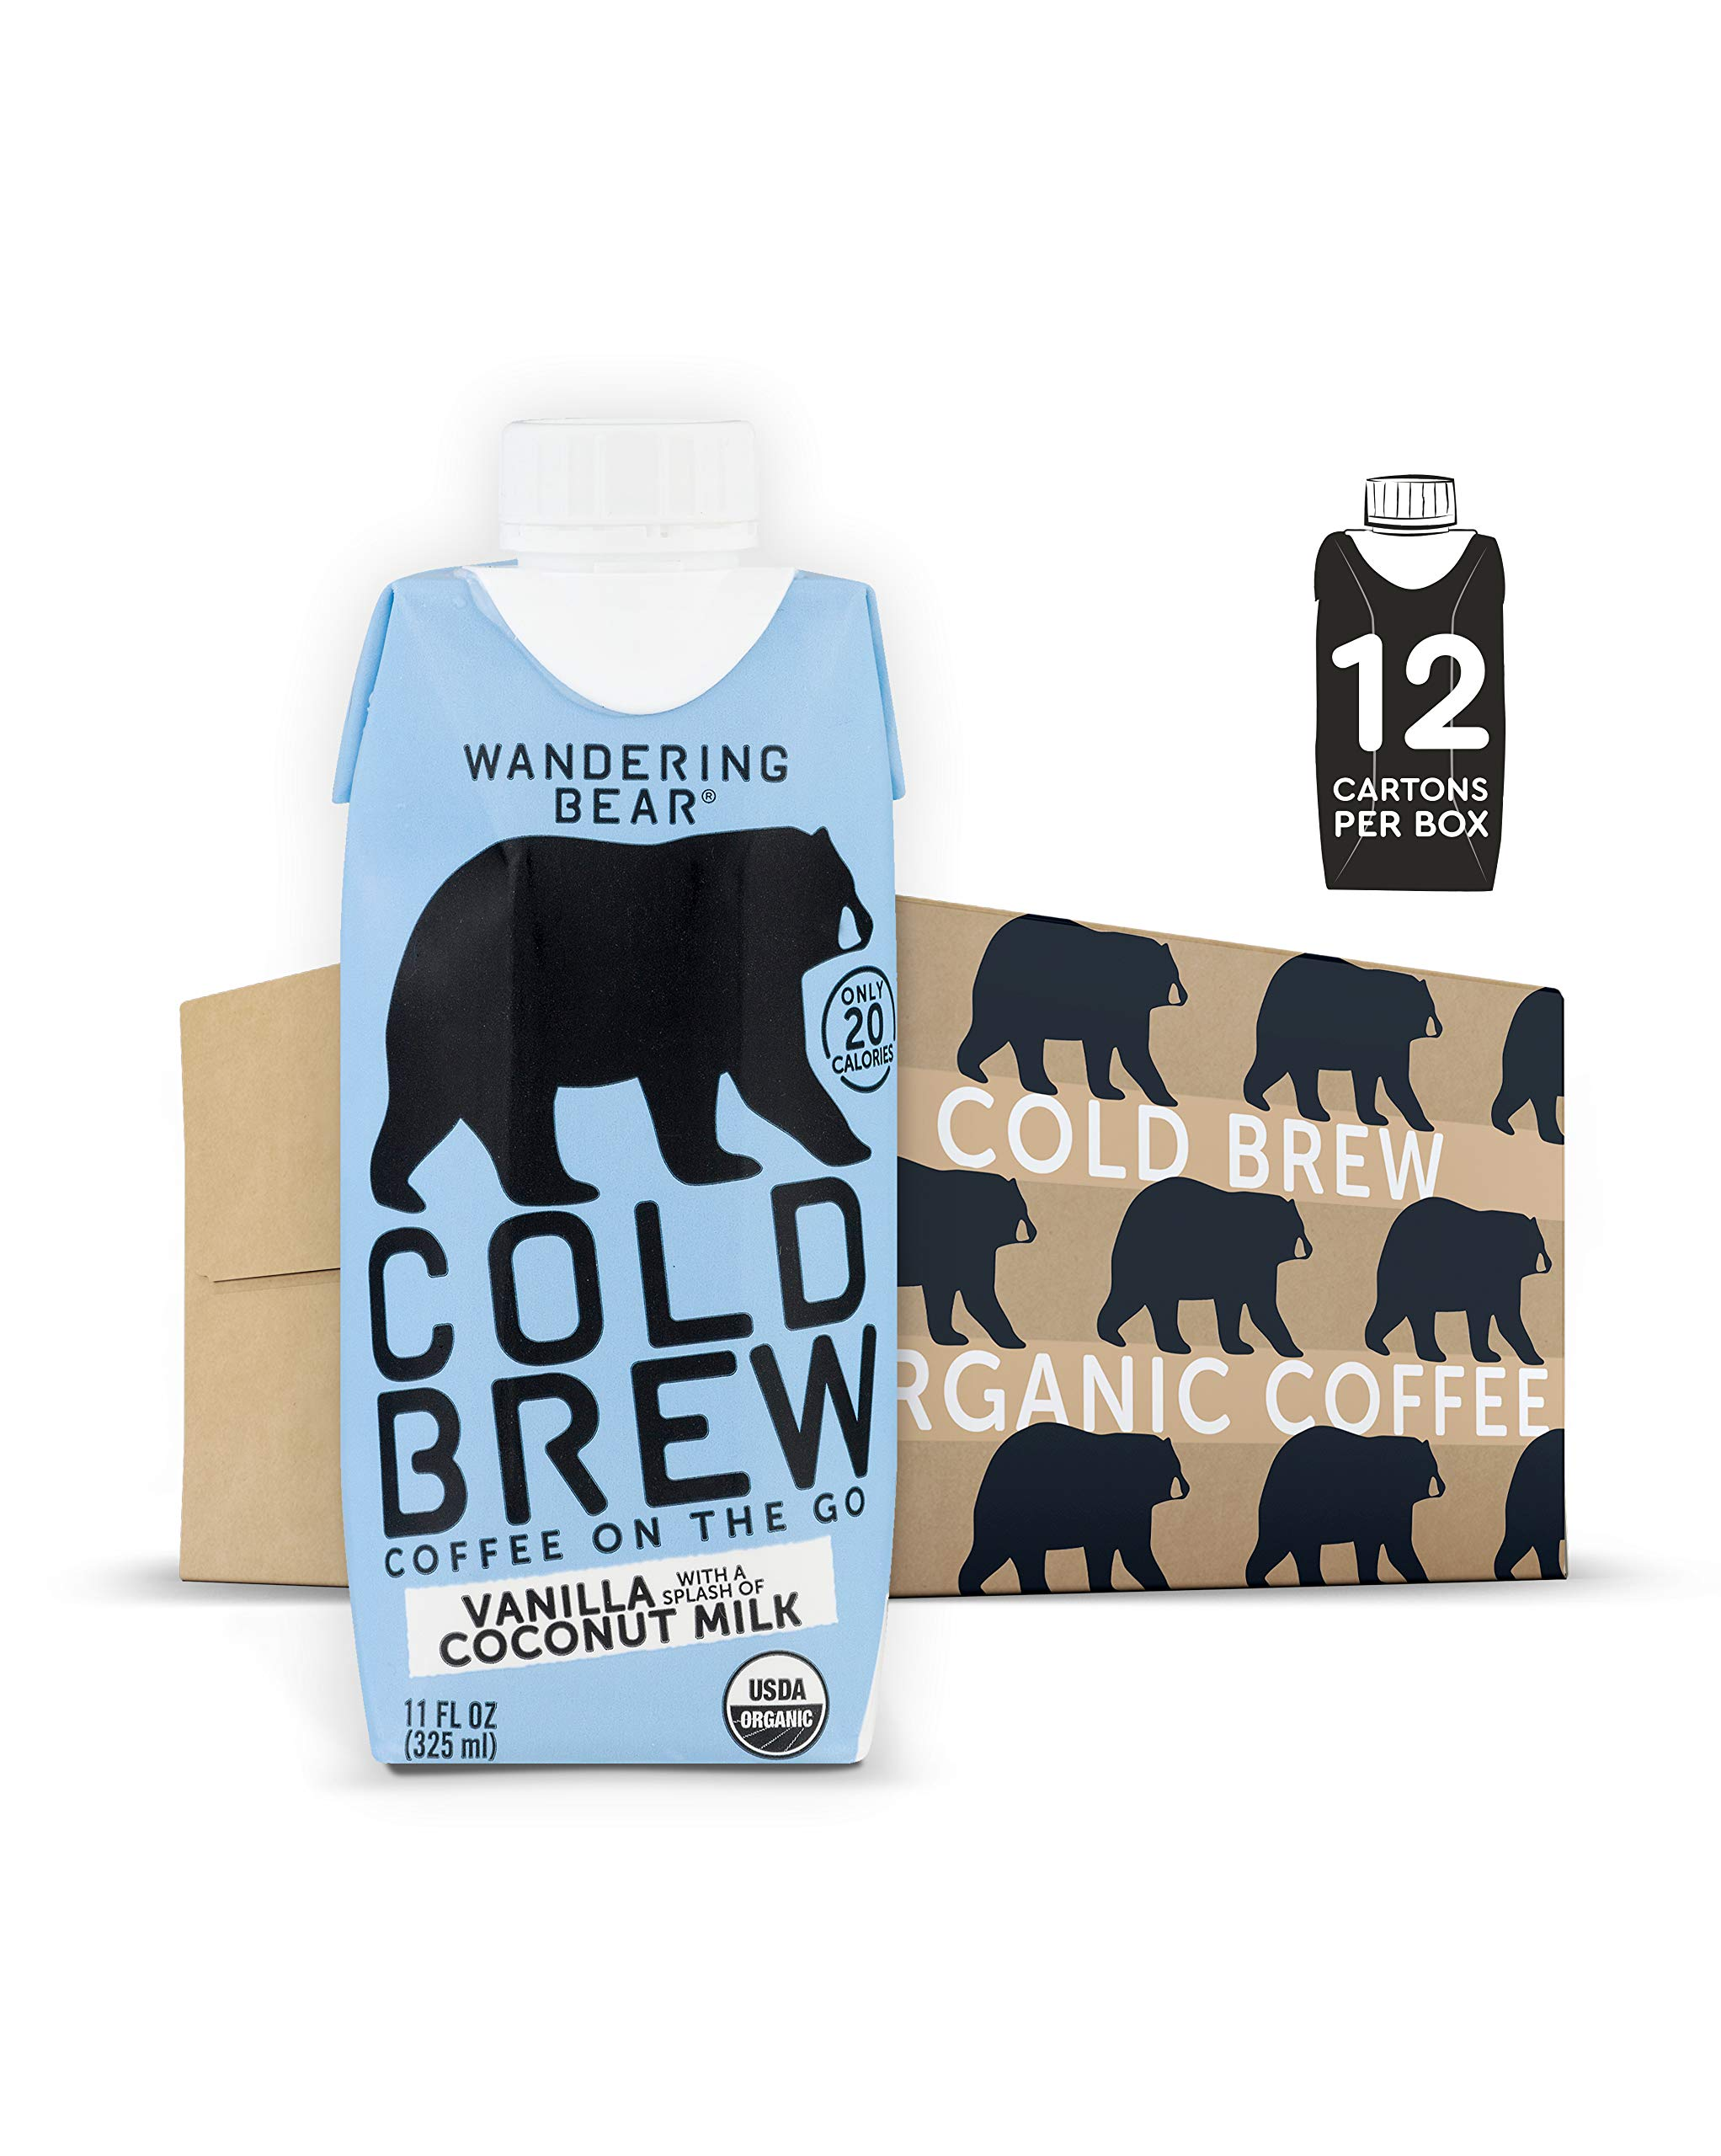 Wandering Bear Organic Cold Brew Coffee On-the-Go 11 oz Carton, Vanilla w/ Splash of Coconut Milk, No Sugar, Ready to Drink, Not a Concentrate (Pack of 12)